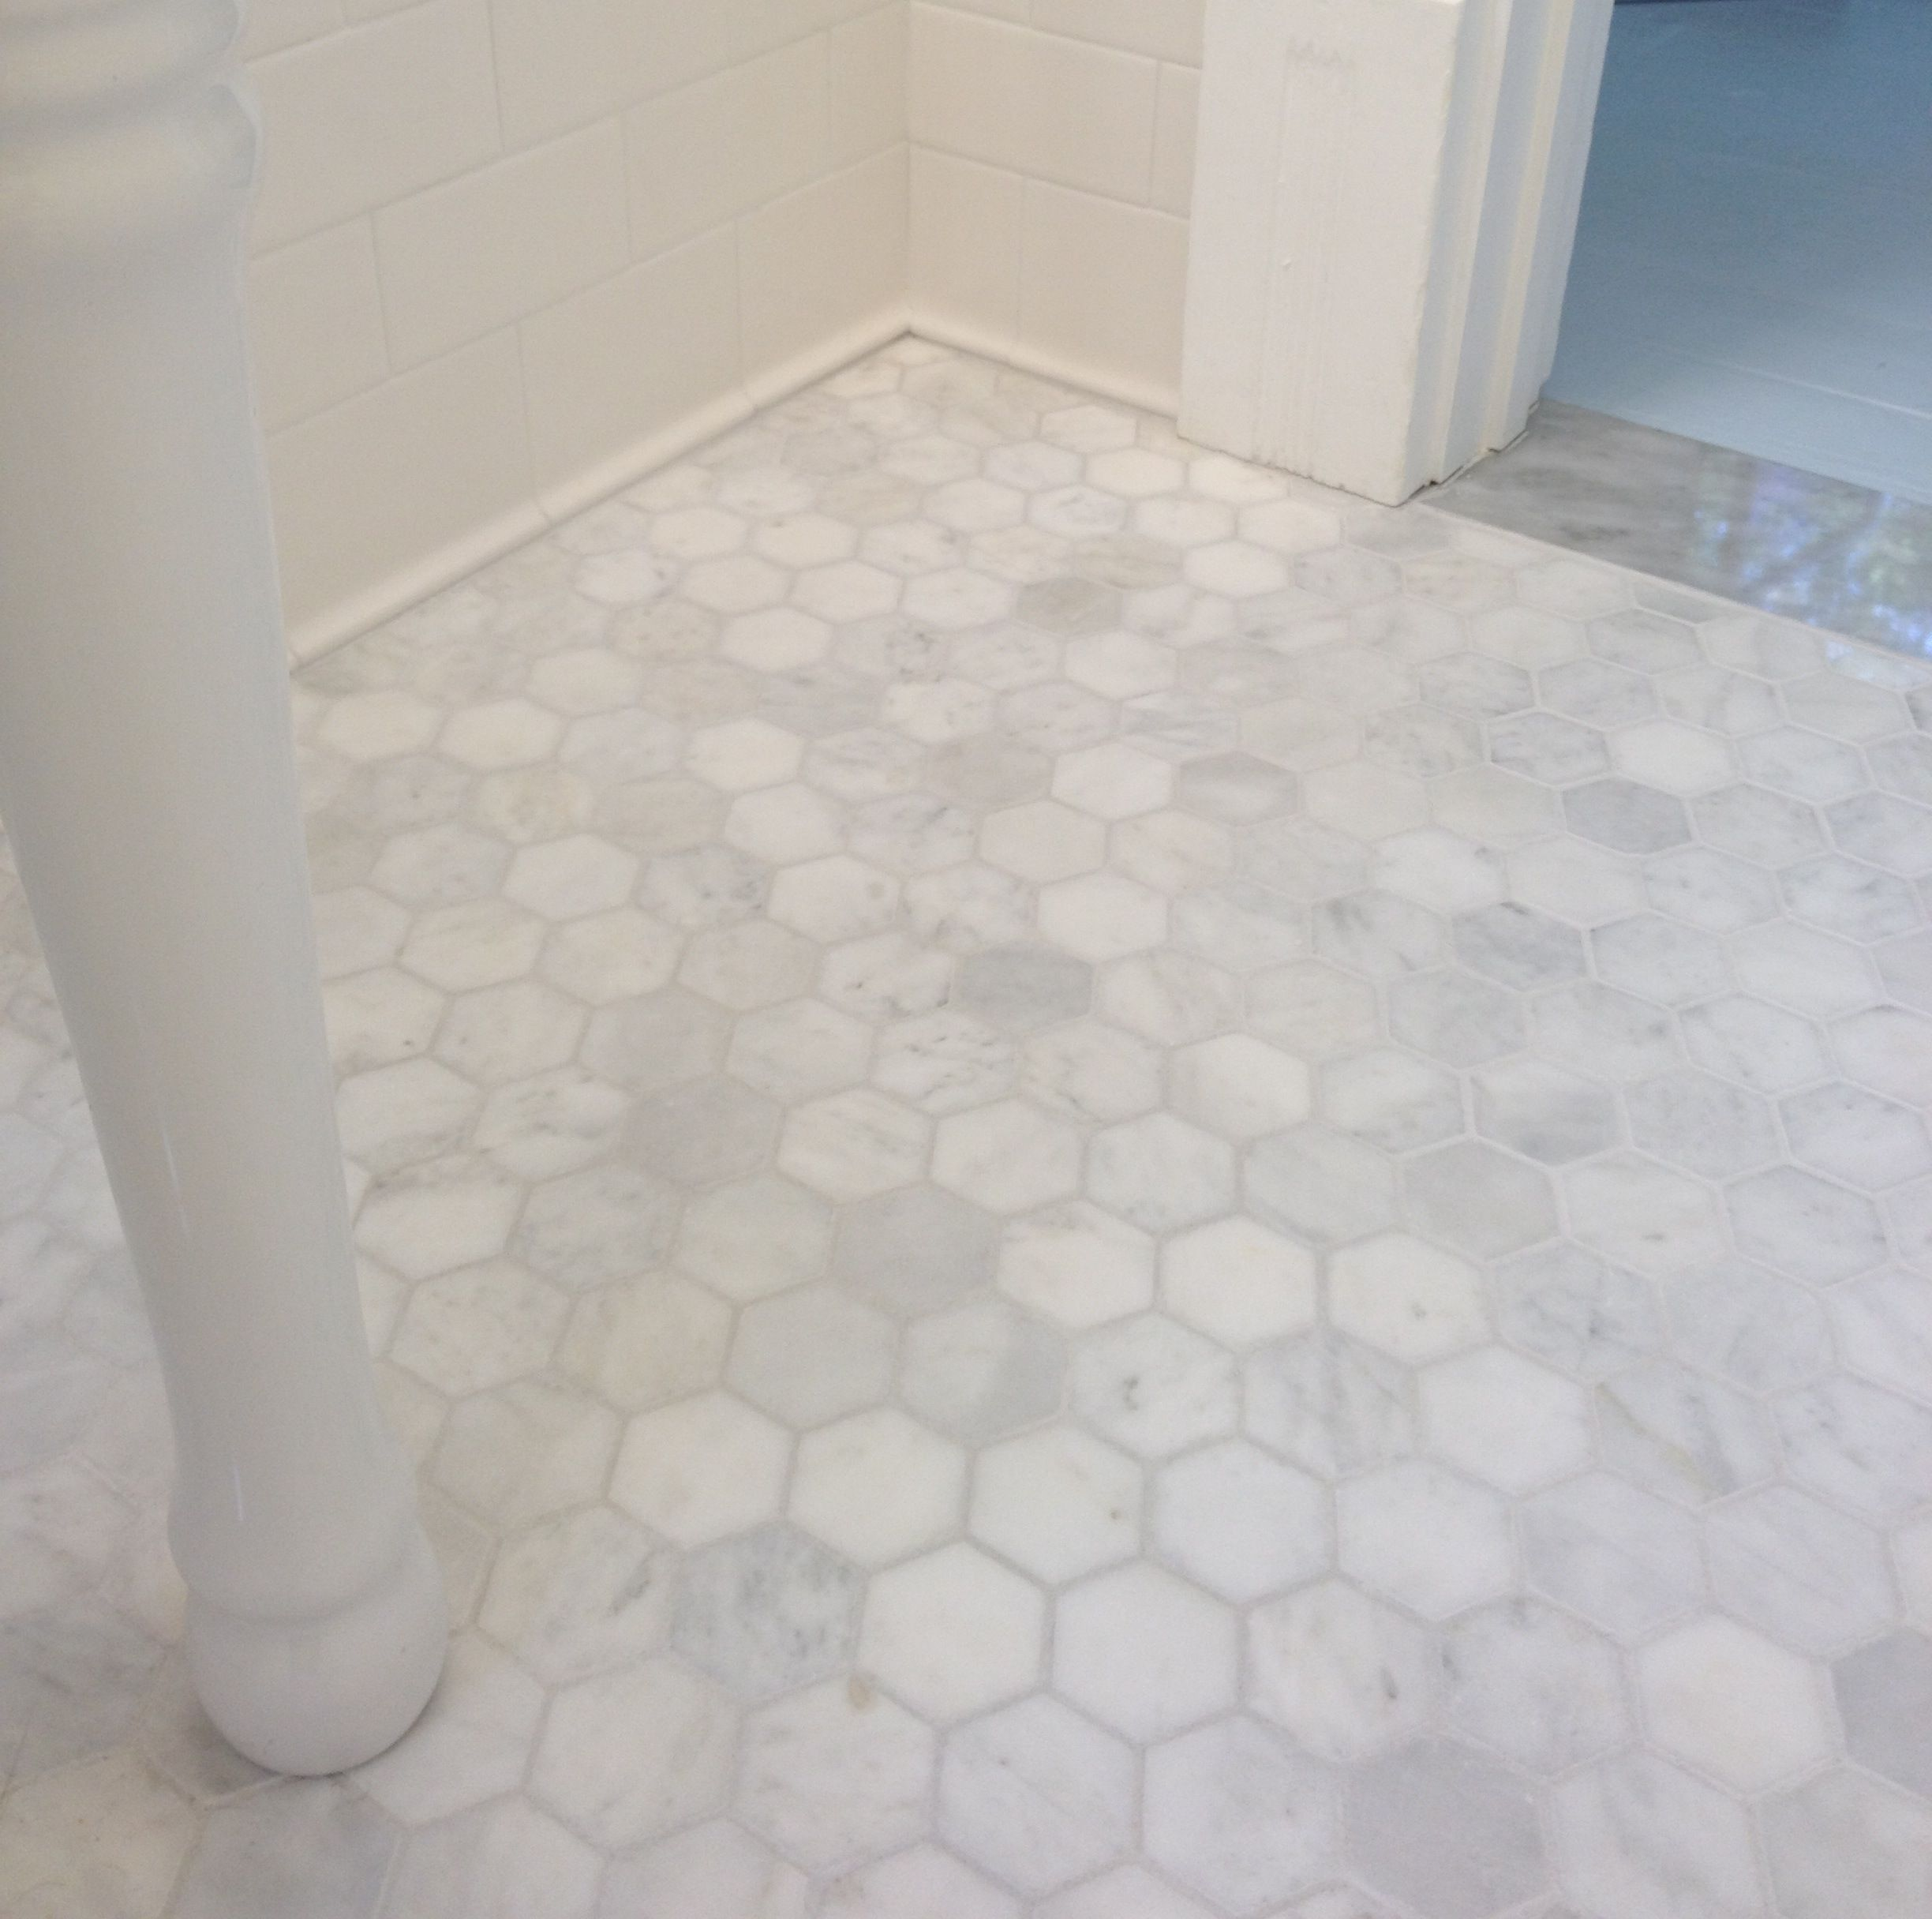 Pin By Victoria Courtney On For The Home Hexagon Tile Bathroom Hexagon Tile Bathroom Floor Hex Tiles Bathroom